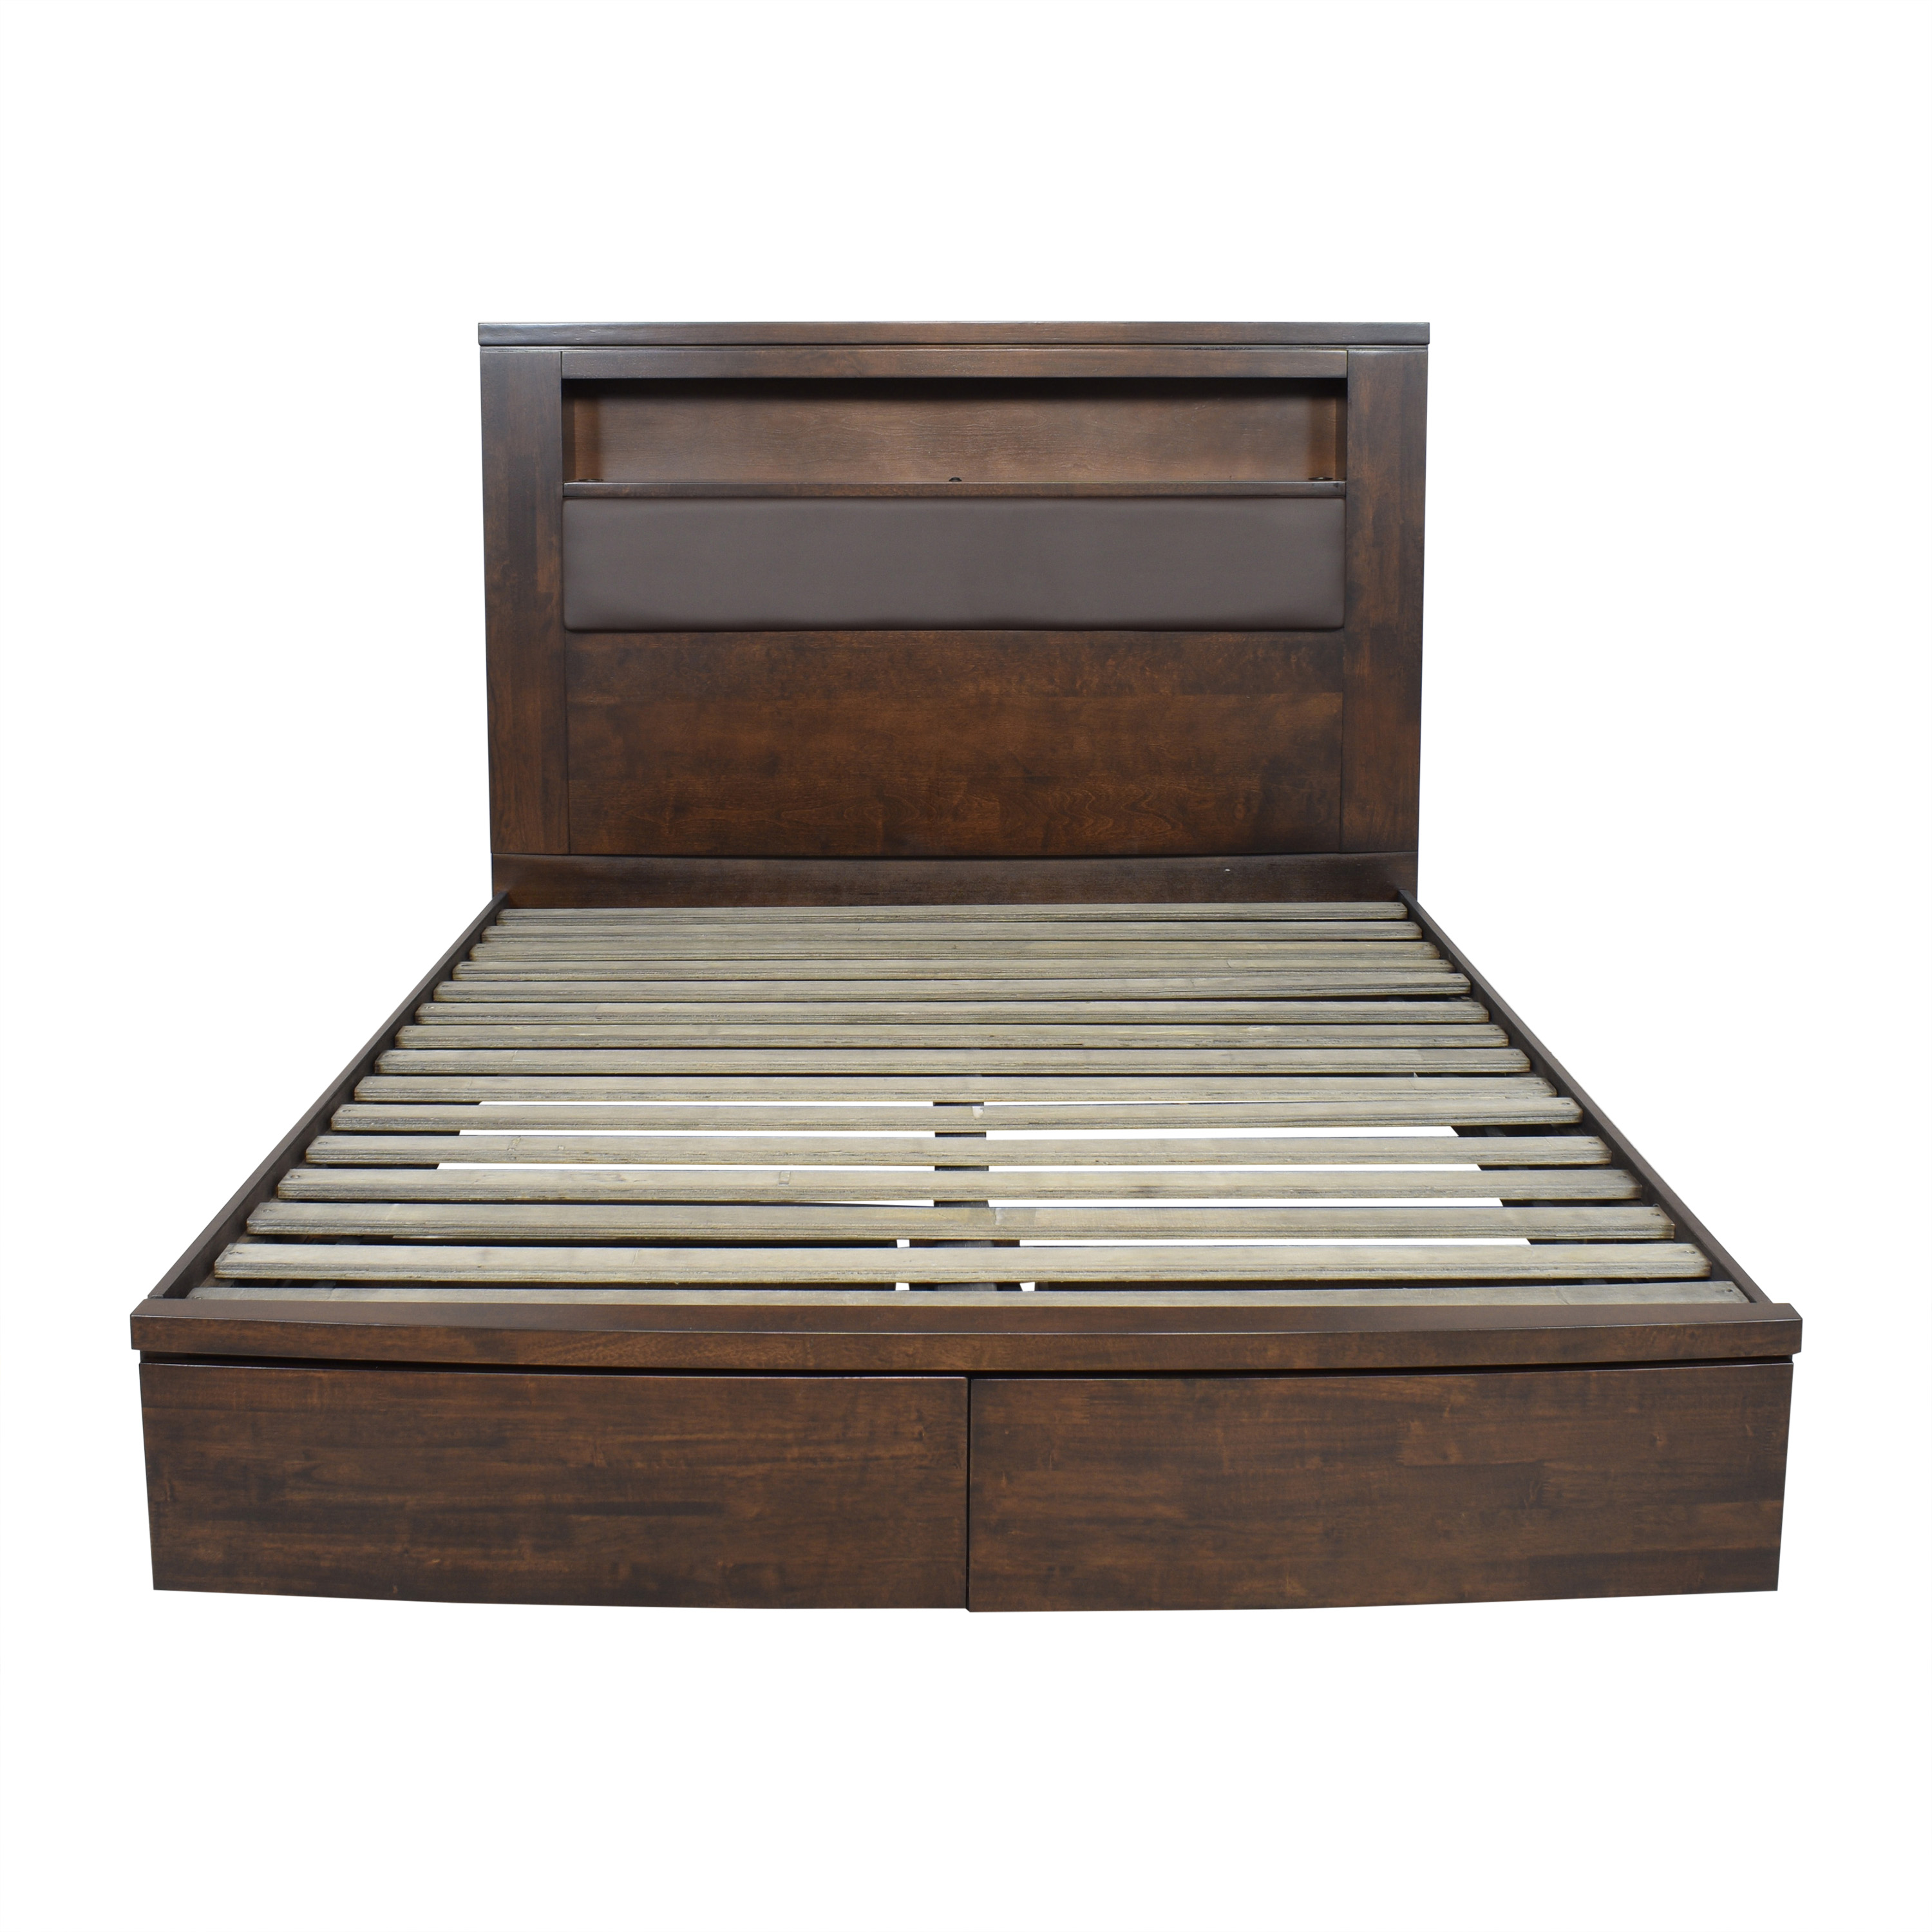 shop Raymour & Flanigan Raymour & Flanigan Wall Street Queen Storage Platform Bed online